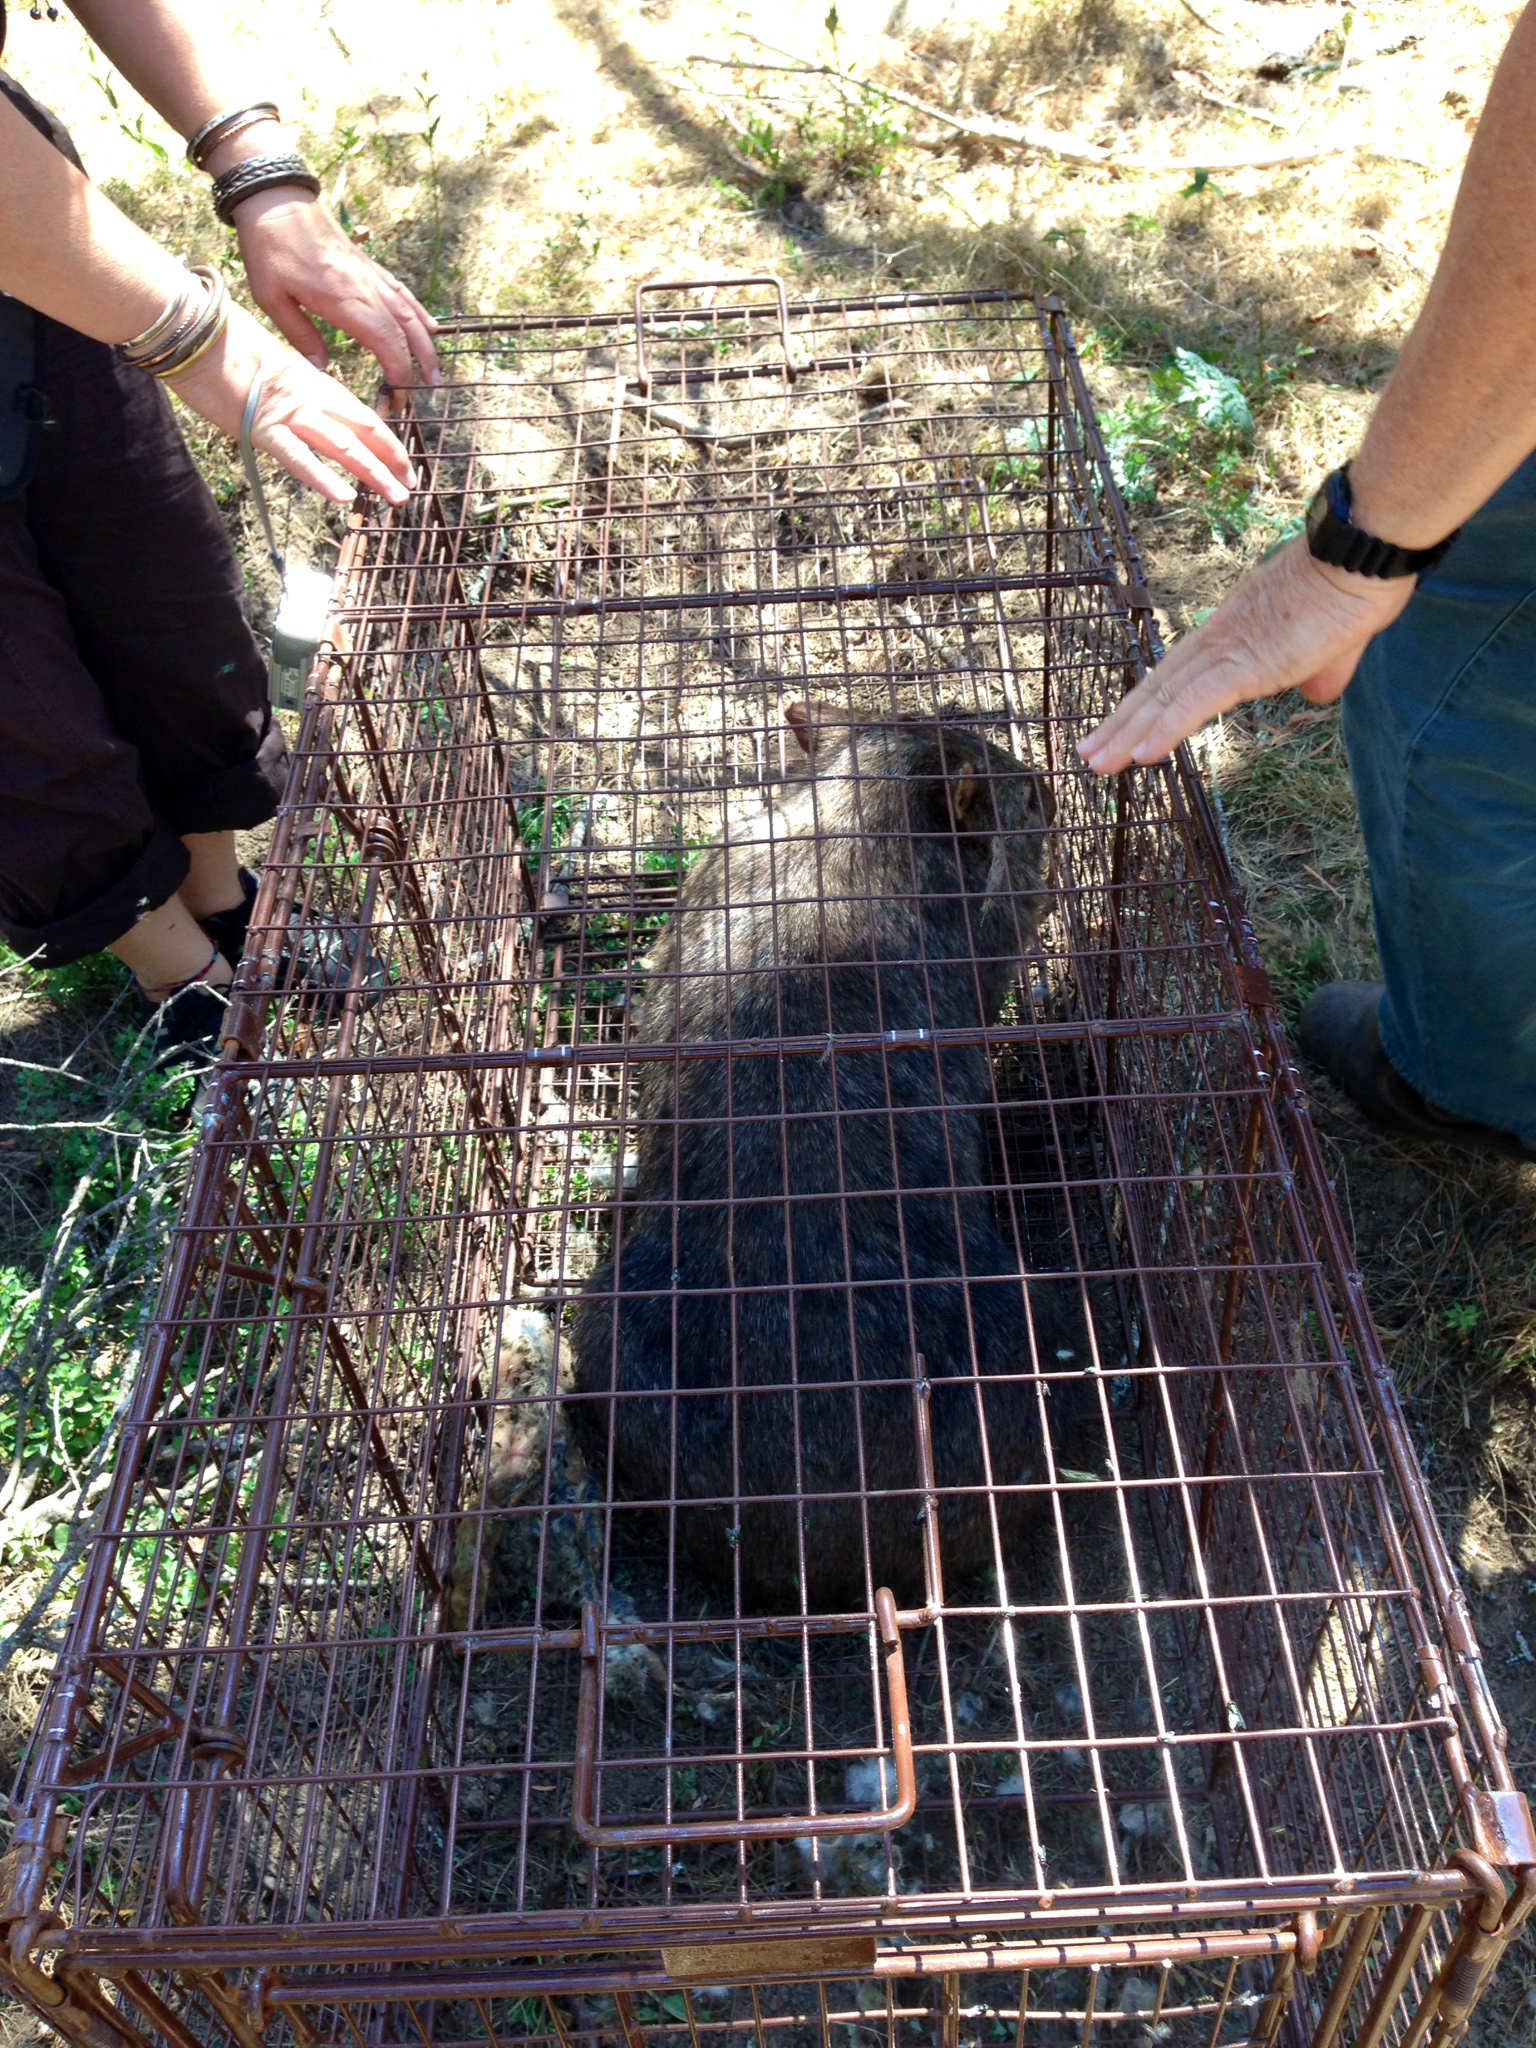 Female wombat stuck inside a lace monitor trap